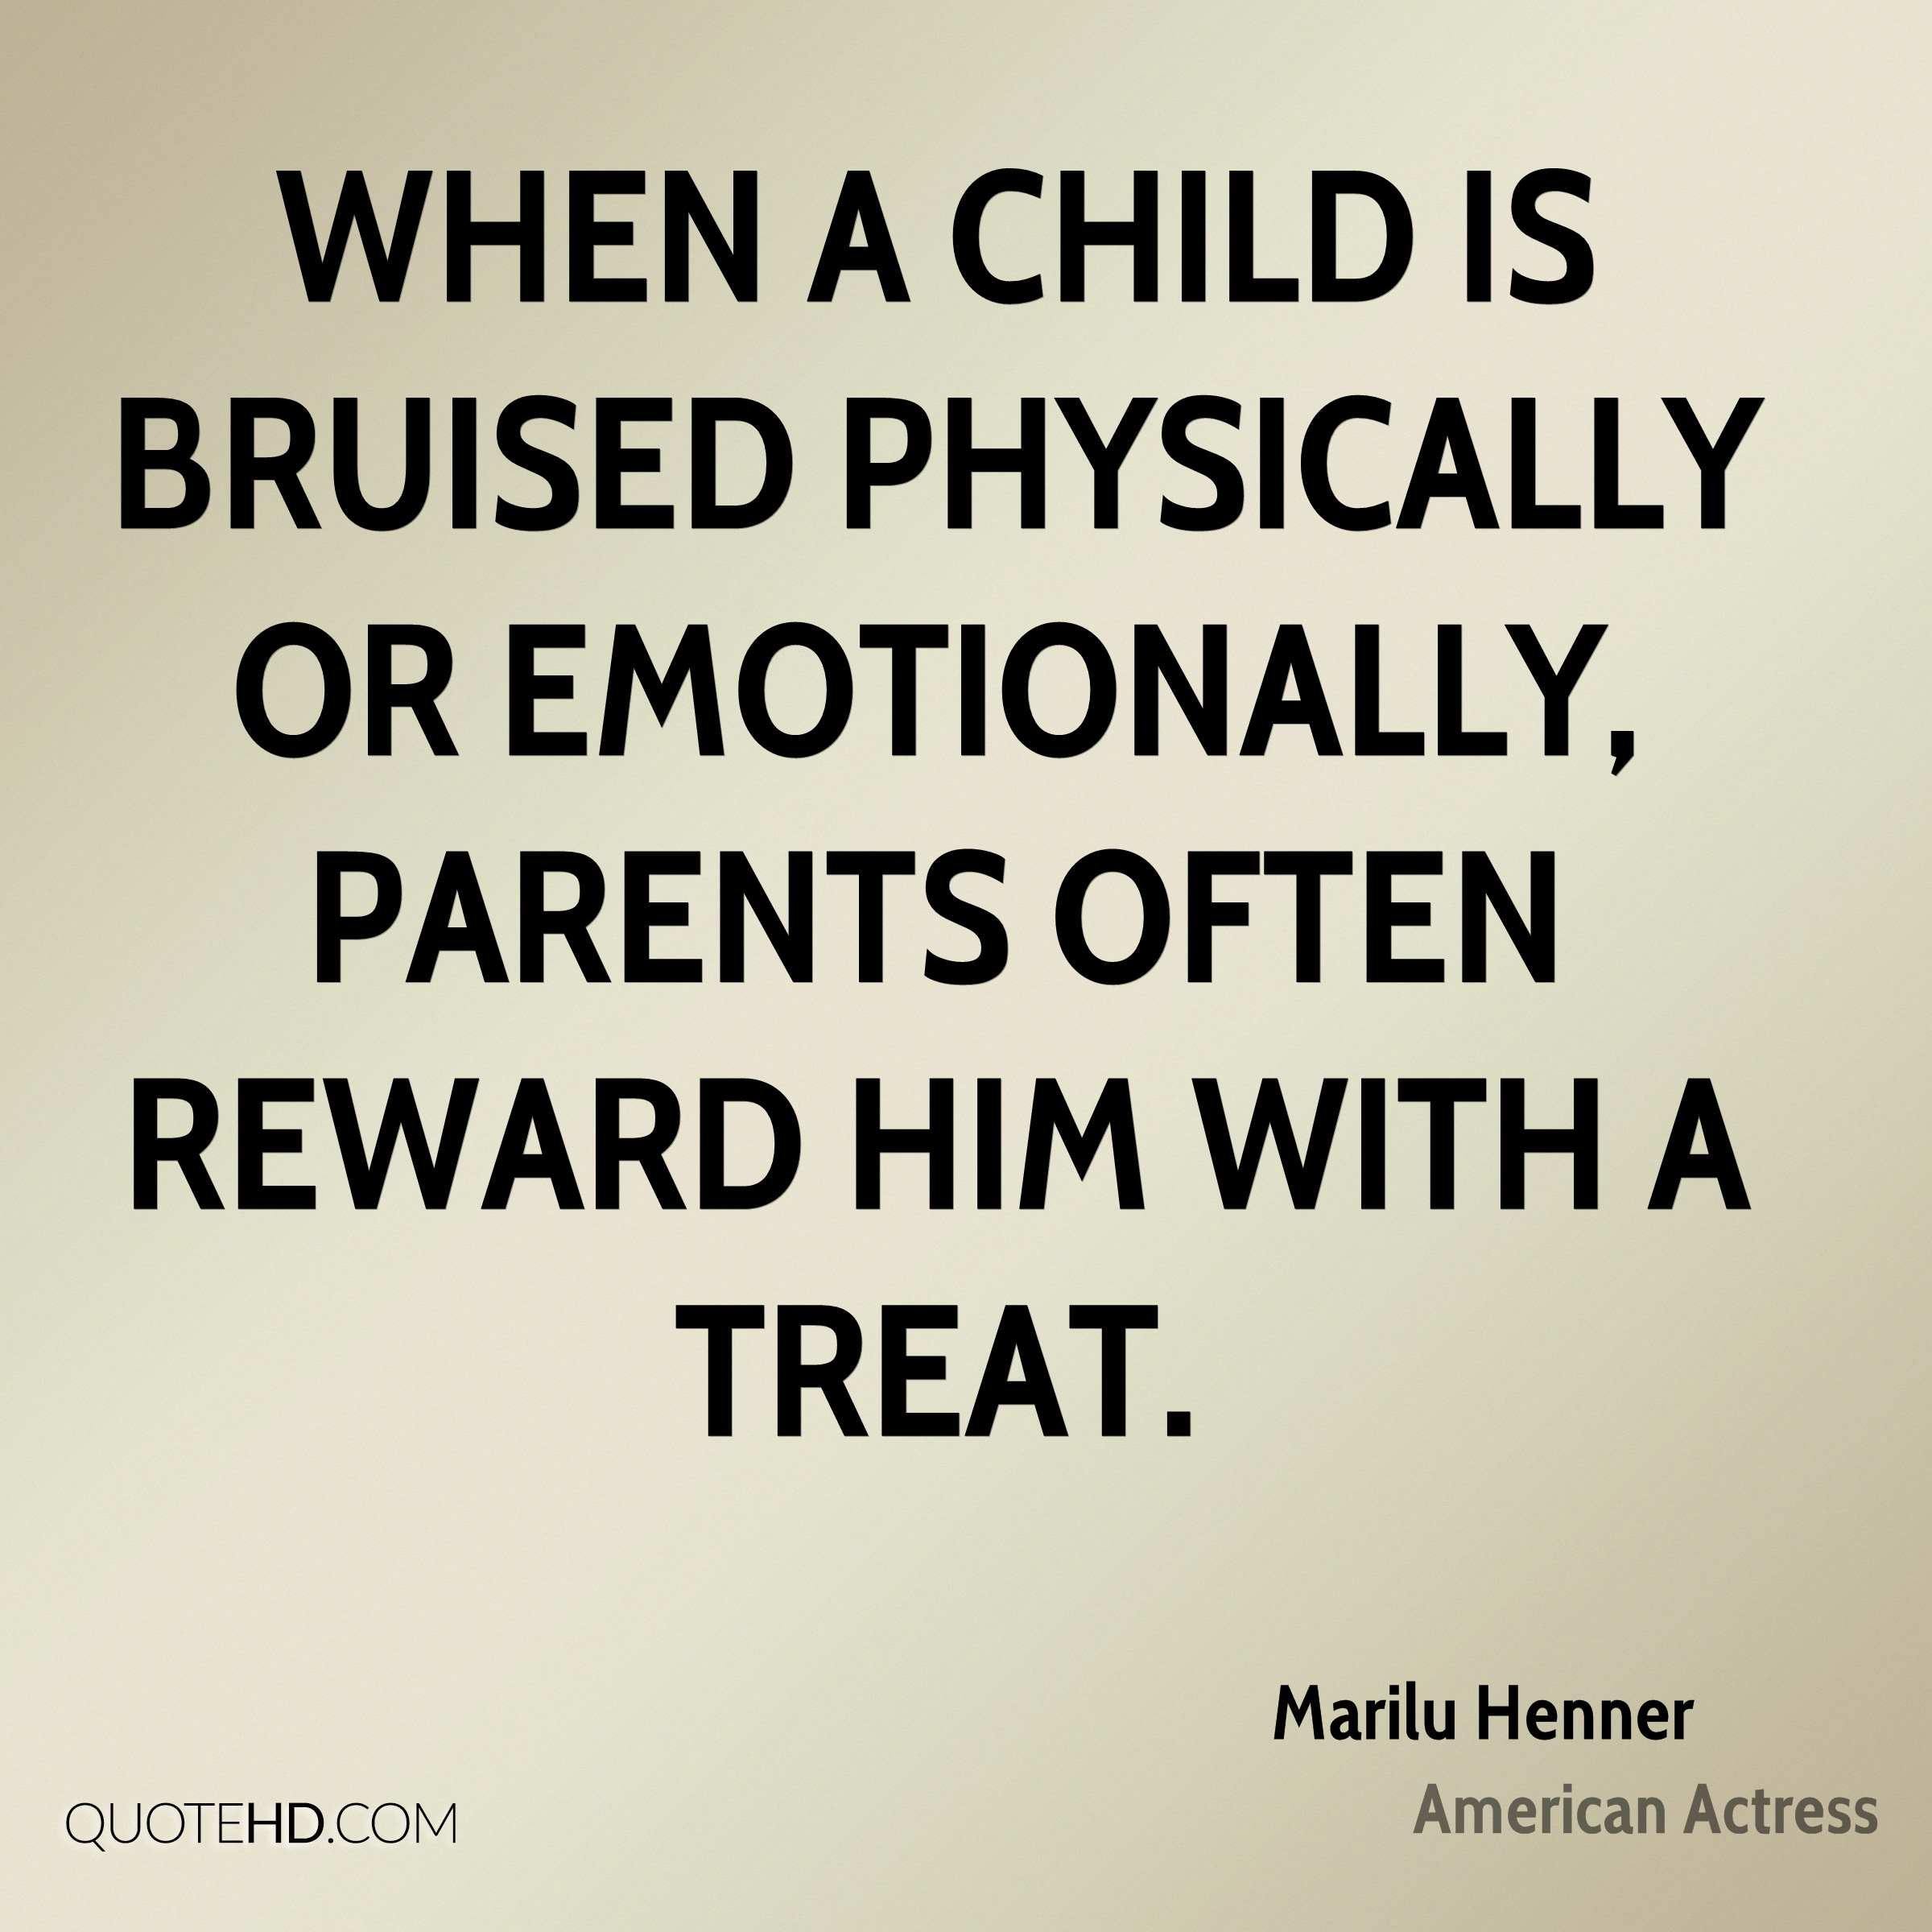 When a child is bruised physically or emotionally, parents often reward him with a treat.